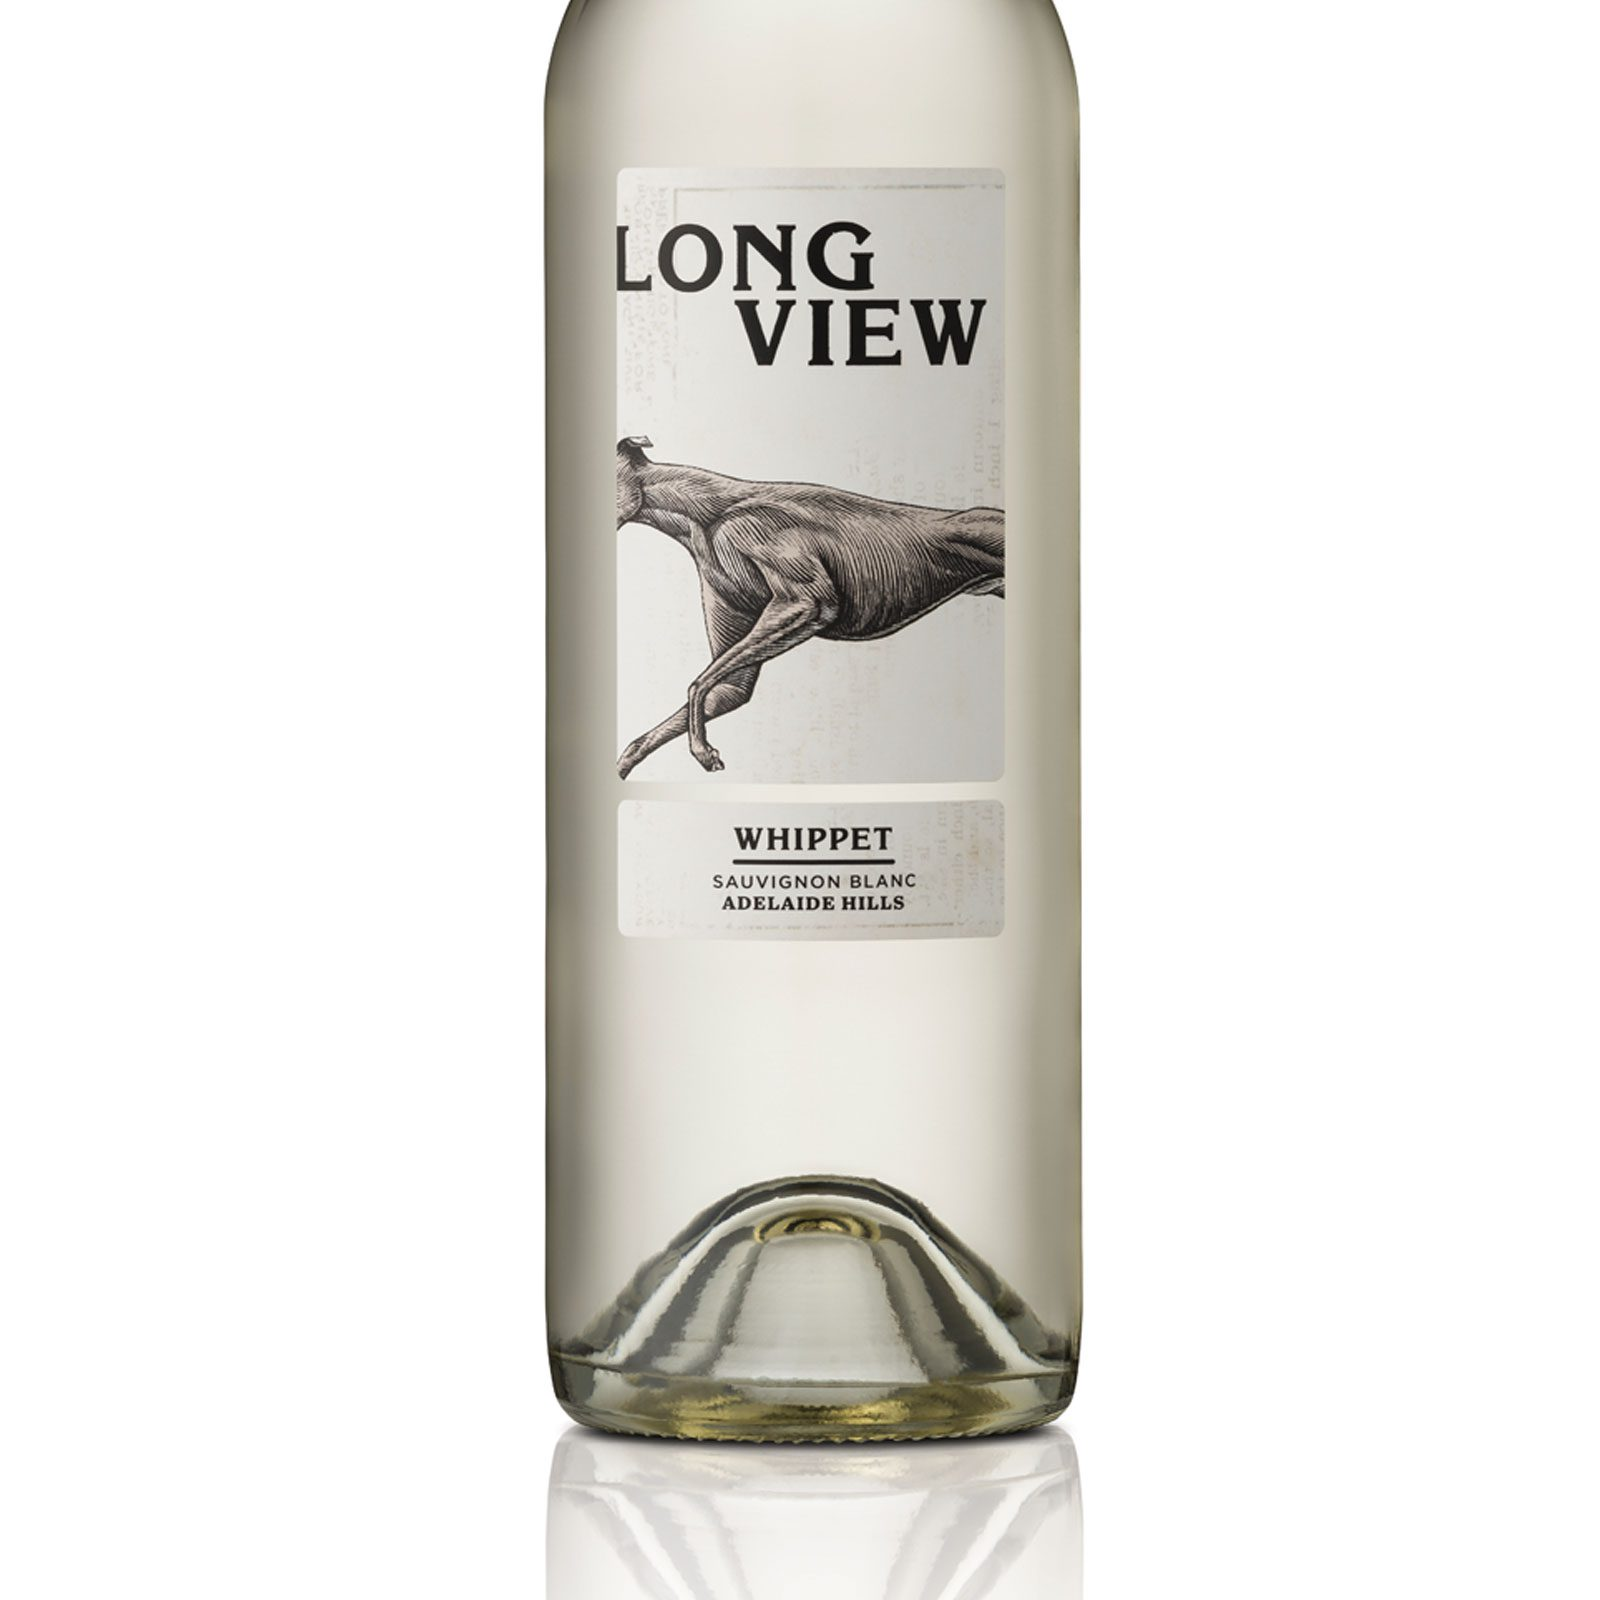 products-longview-whippet-sauvignon-blanc-b